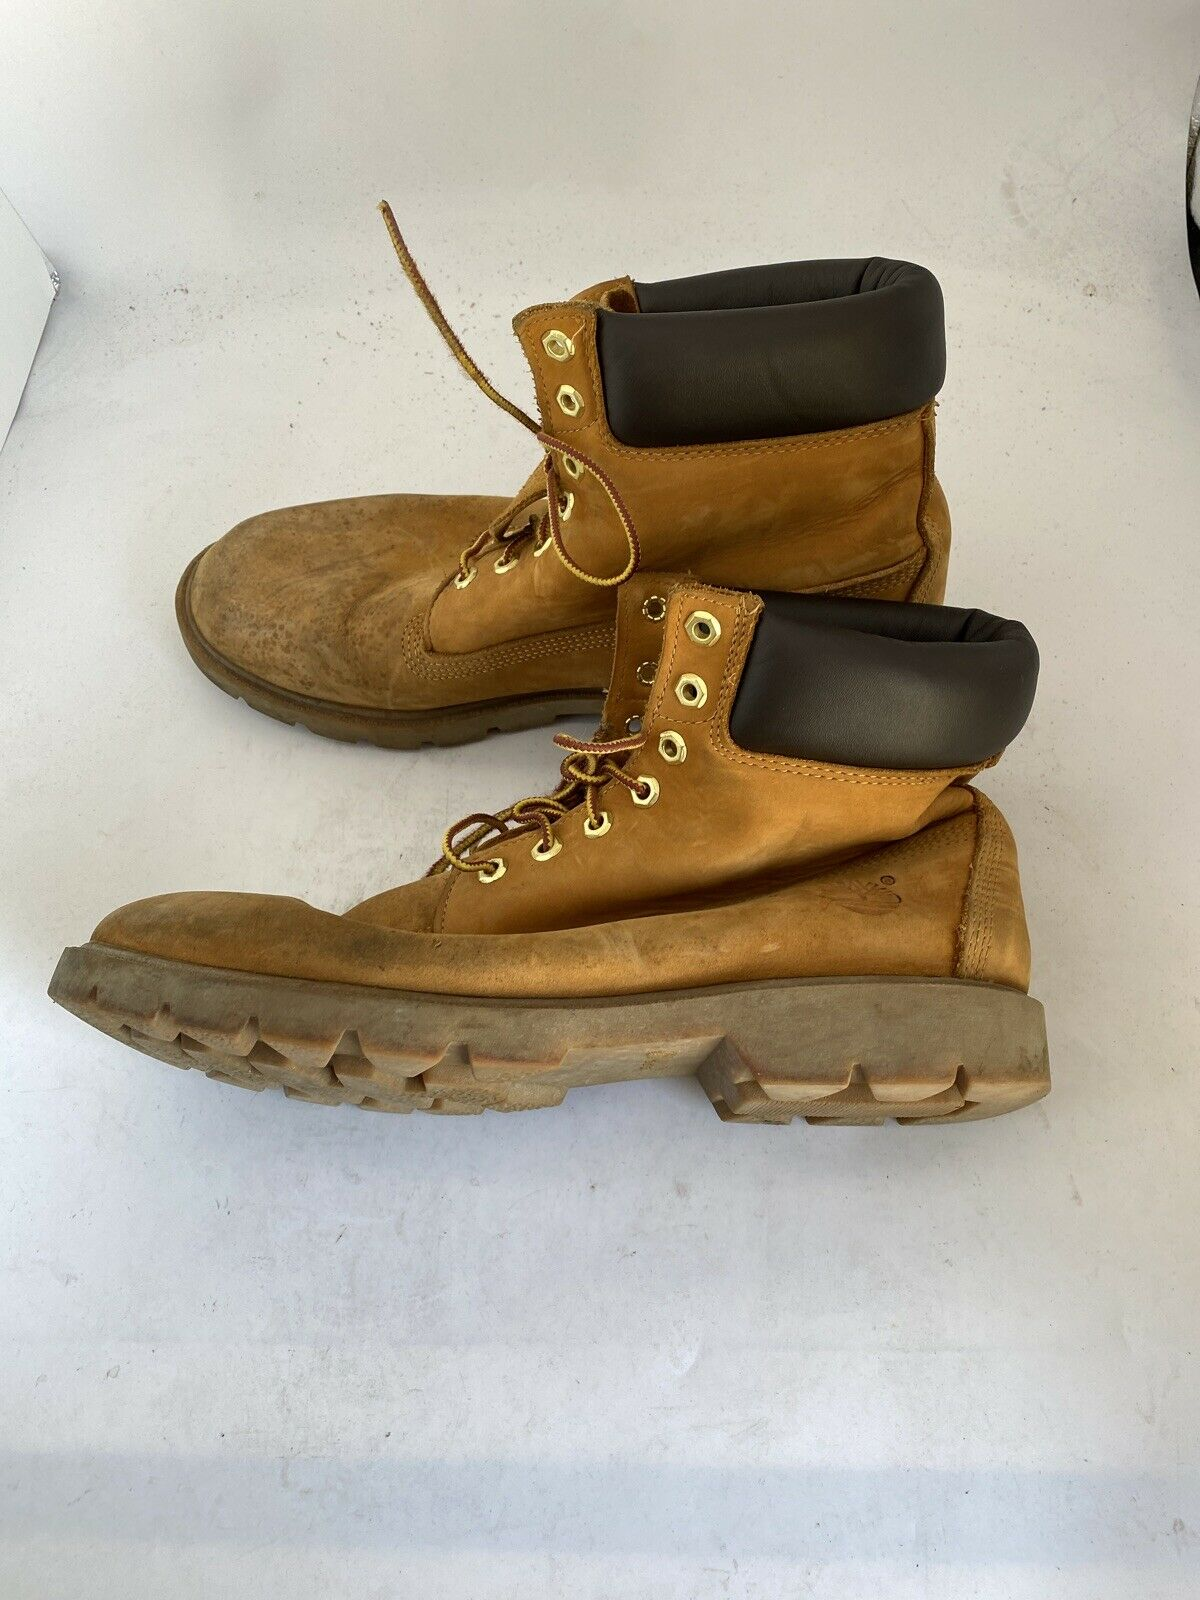 Timberland MEN'S 18094 ORIGINAL GOLD TIMS WATERPROOF BOOTS Size 12M V825